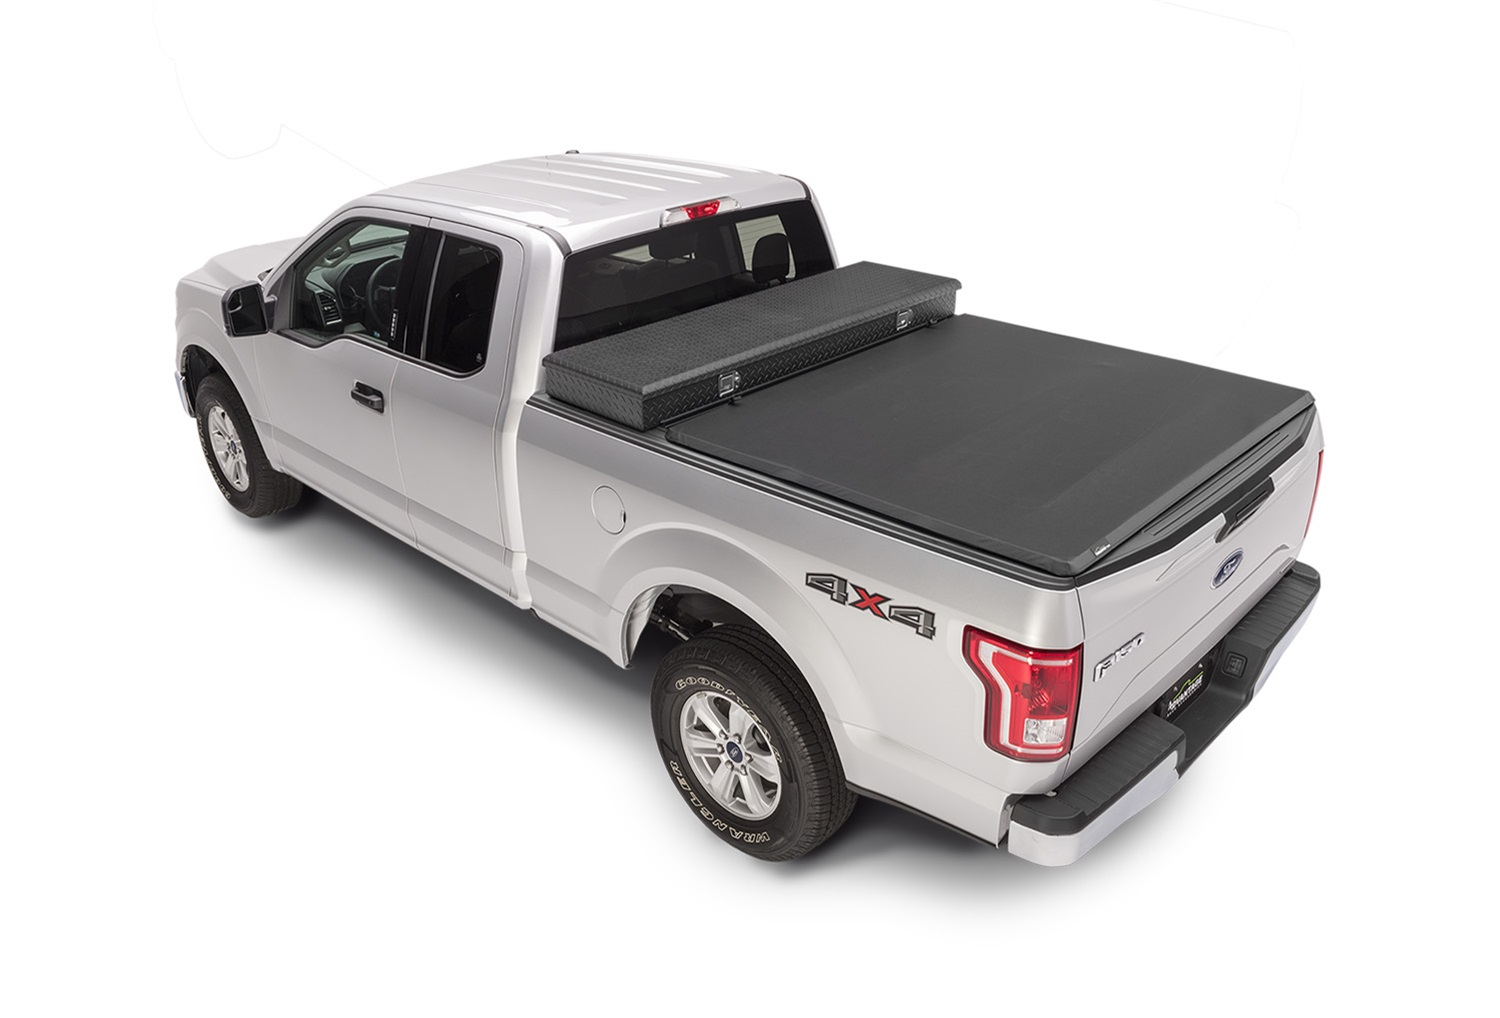 Advantage Truck Accessories 30112 Torza Toolbox Tonneau Cover by Advantage Truck Accessories